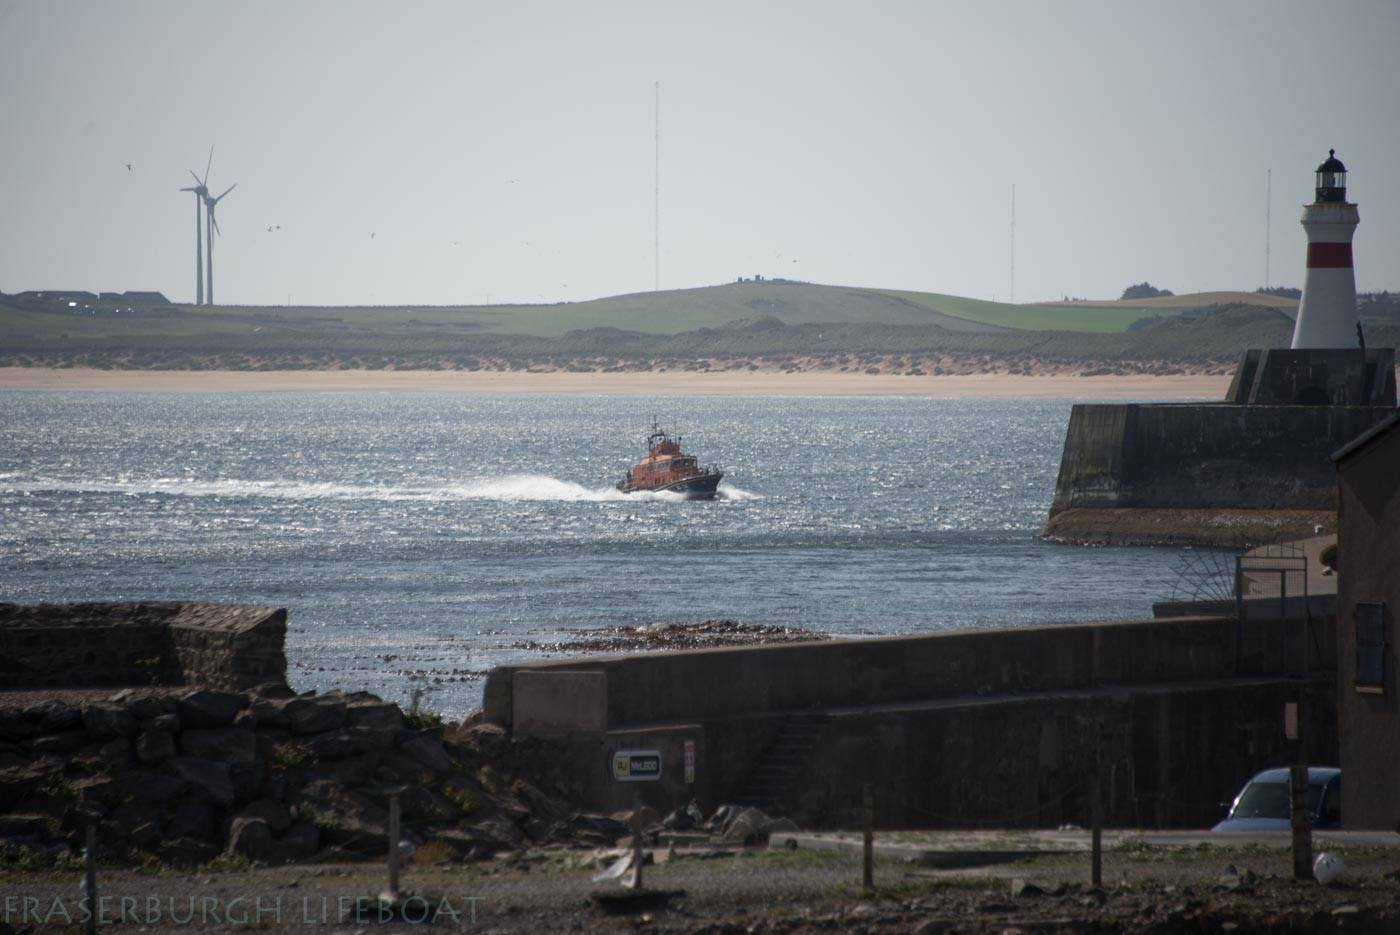 The Fraserburgh Lifeboat en route to the scene